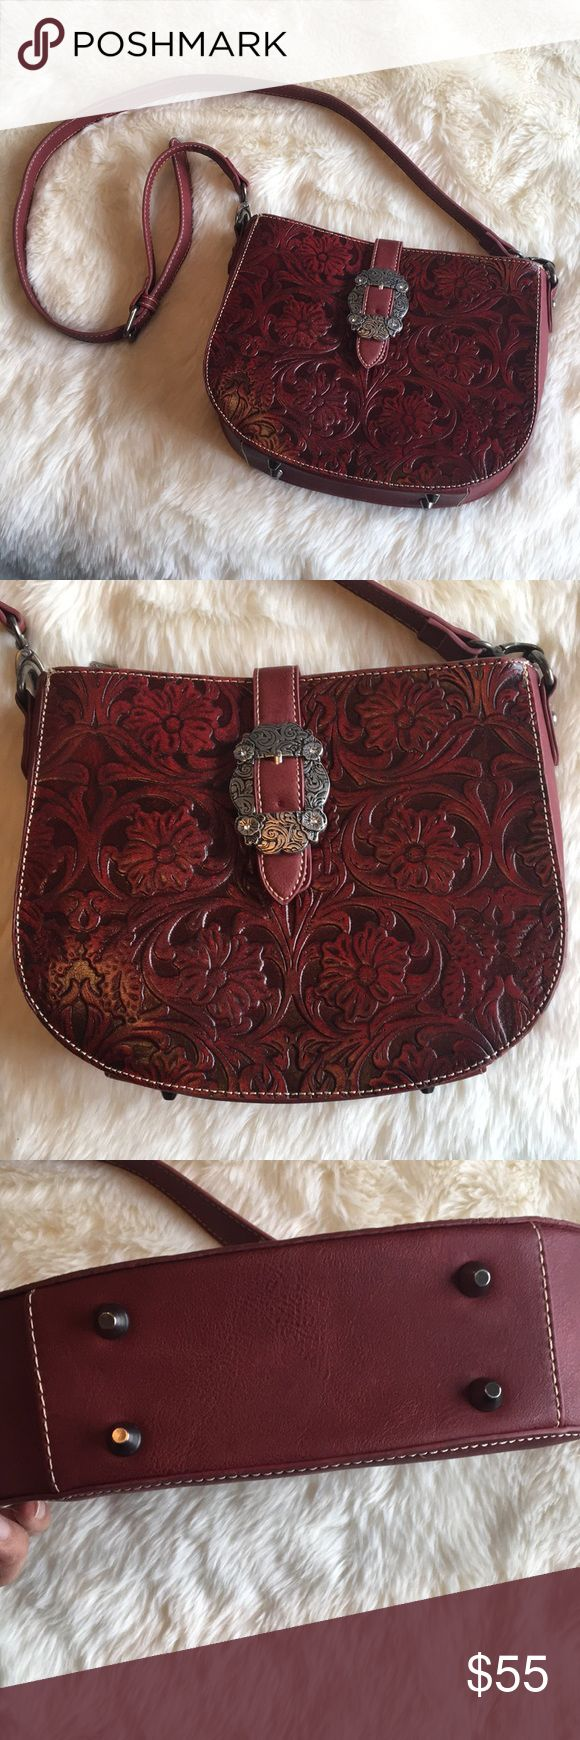 Trinity Ranch red leather shoulder/crossbody bag Trinity Ranch line by Montana West, this partial leather handbag has:  Floral tooled design on genuine leather buckle concho on the flap that snap close A single compartment divided by a medium zippered pocket A smaller zippered pocket on inside back 2 open pockets on the inside front Single flat straps  10.5 x 3 x 9 (23 drop strap)  Excellent preloved condition, no flaws Trinity Ranch Bags